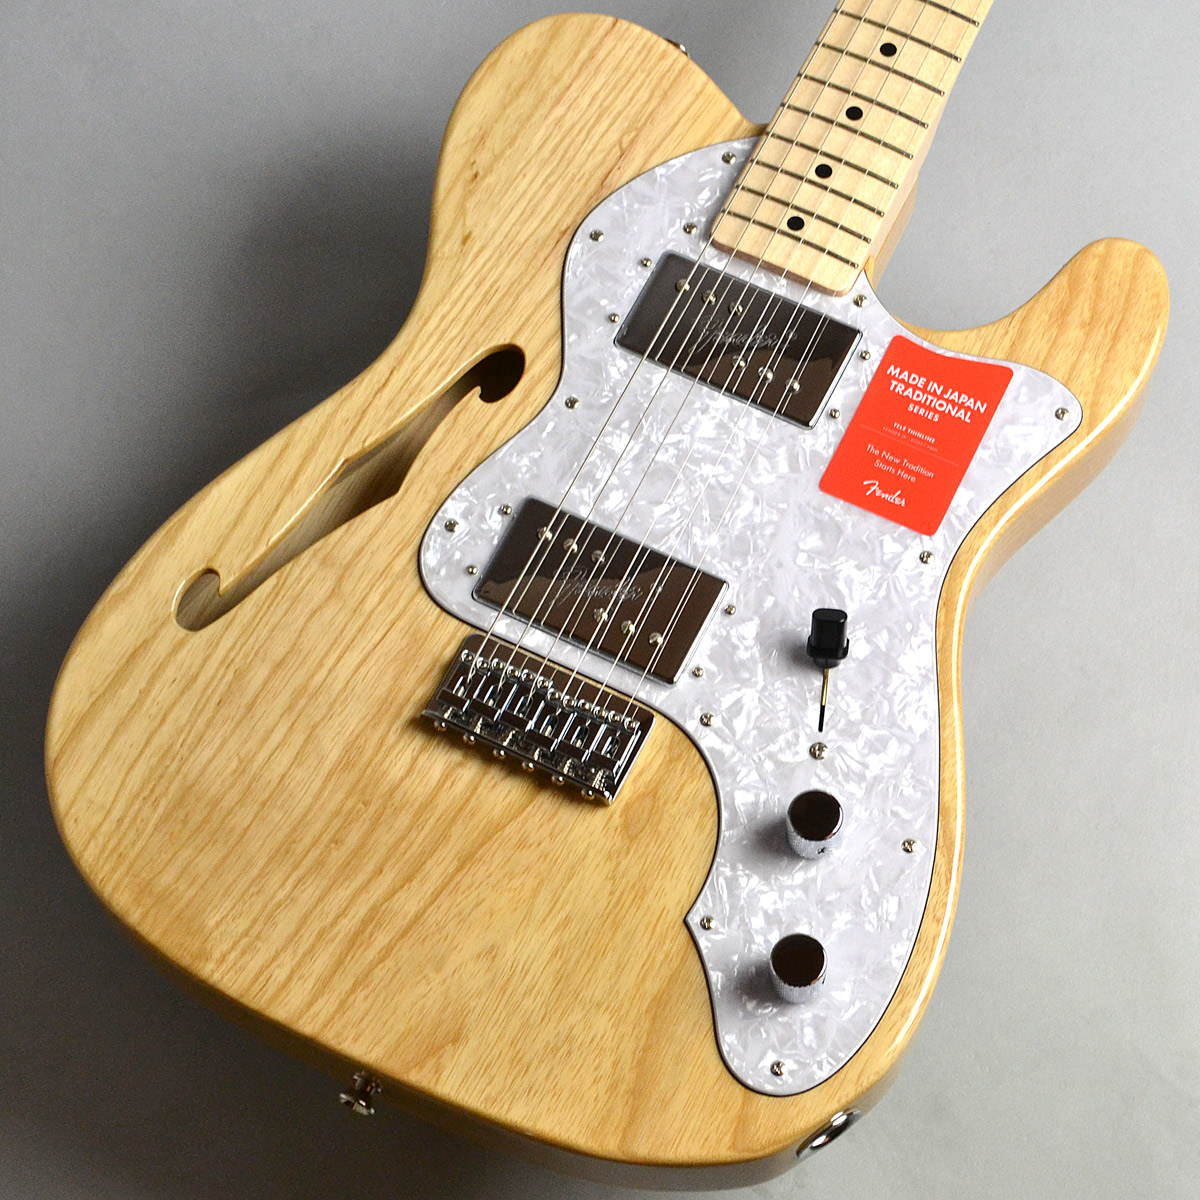 Made in Japan Traditional 70s Telecaster Thinlineのボディトップ-アップ画像